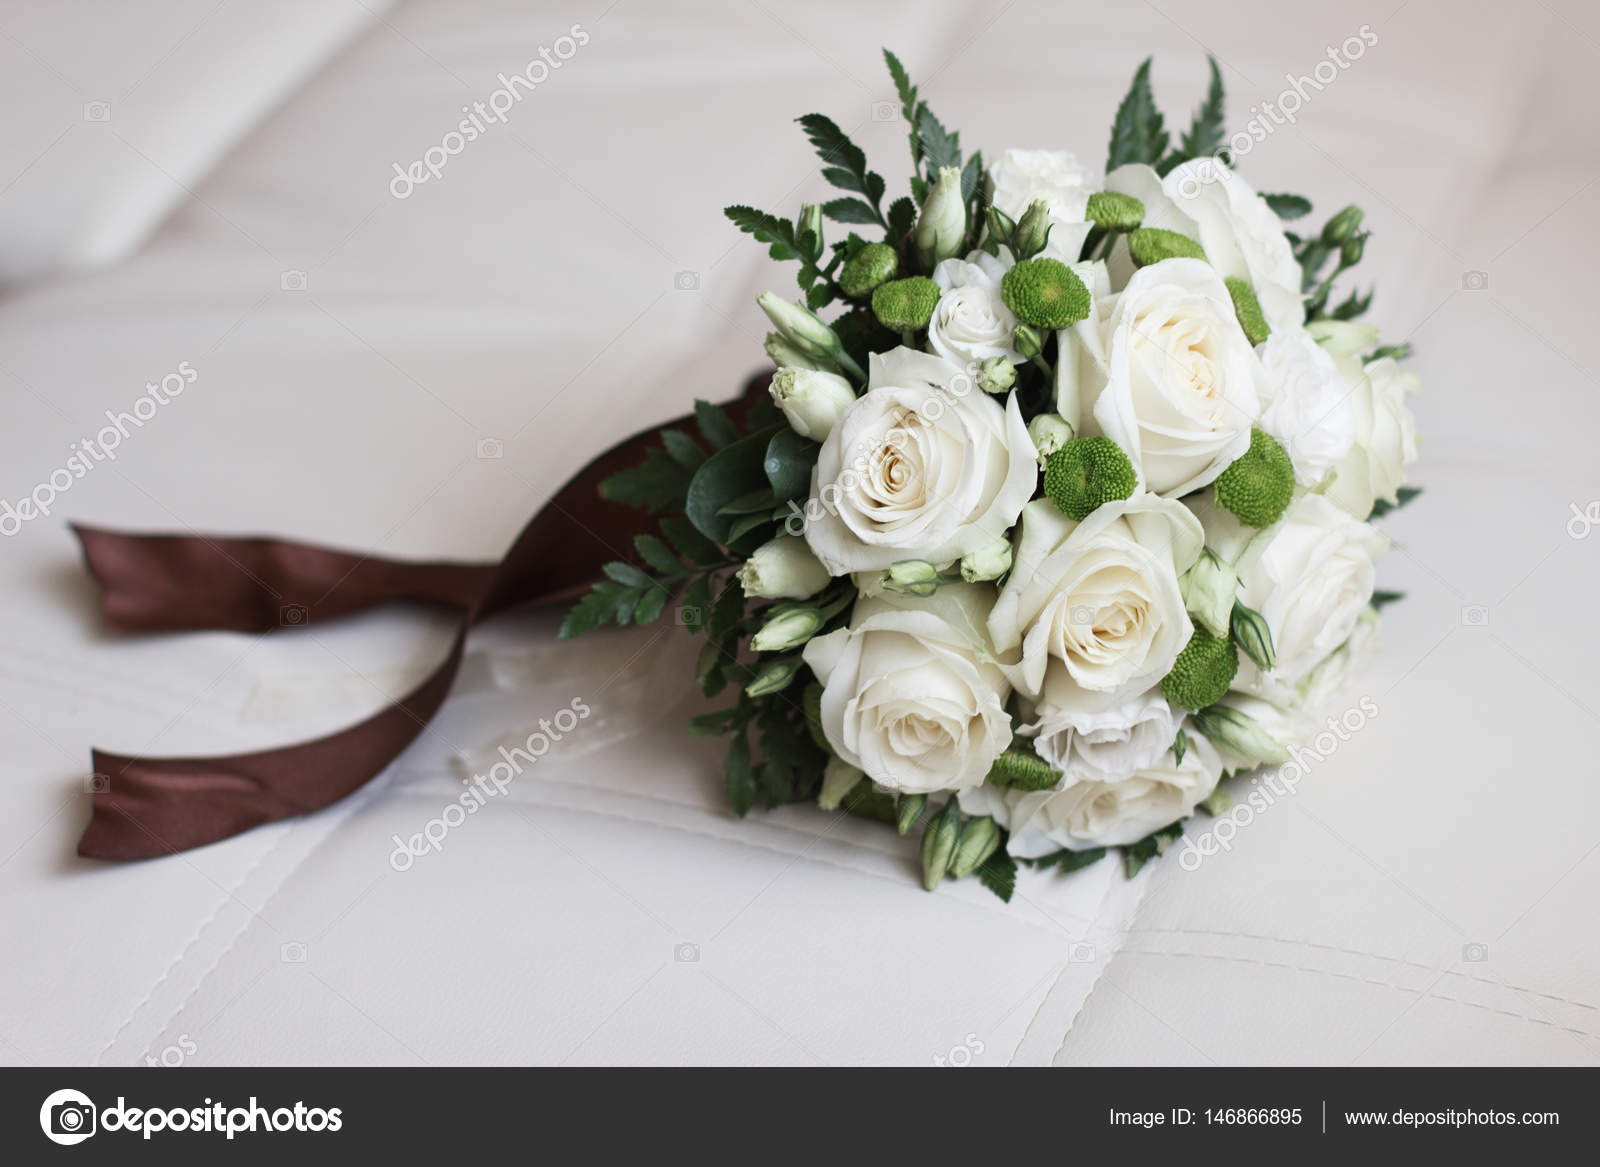 Wedding Bouquet Of Yellow And White Roses And Blue Fresia Lying On